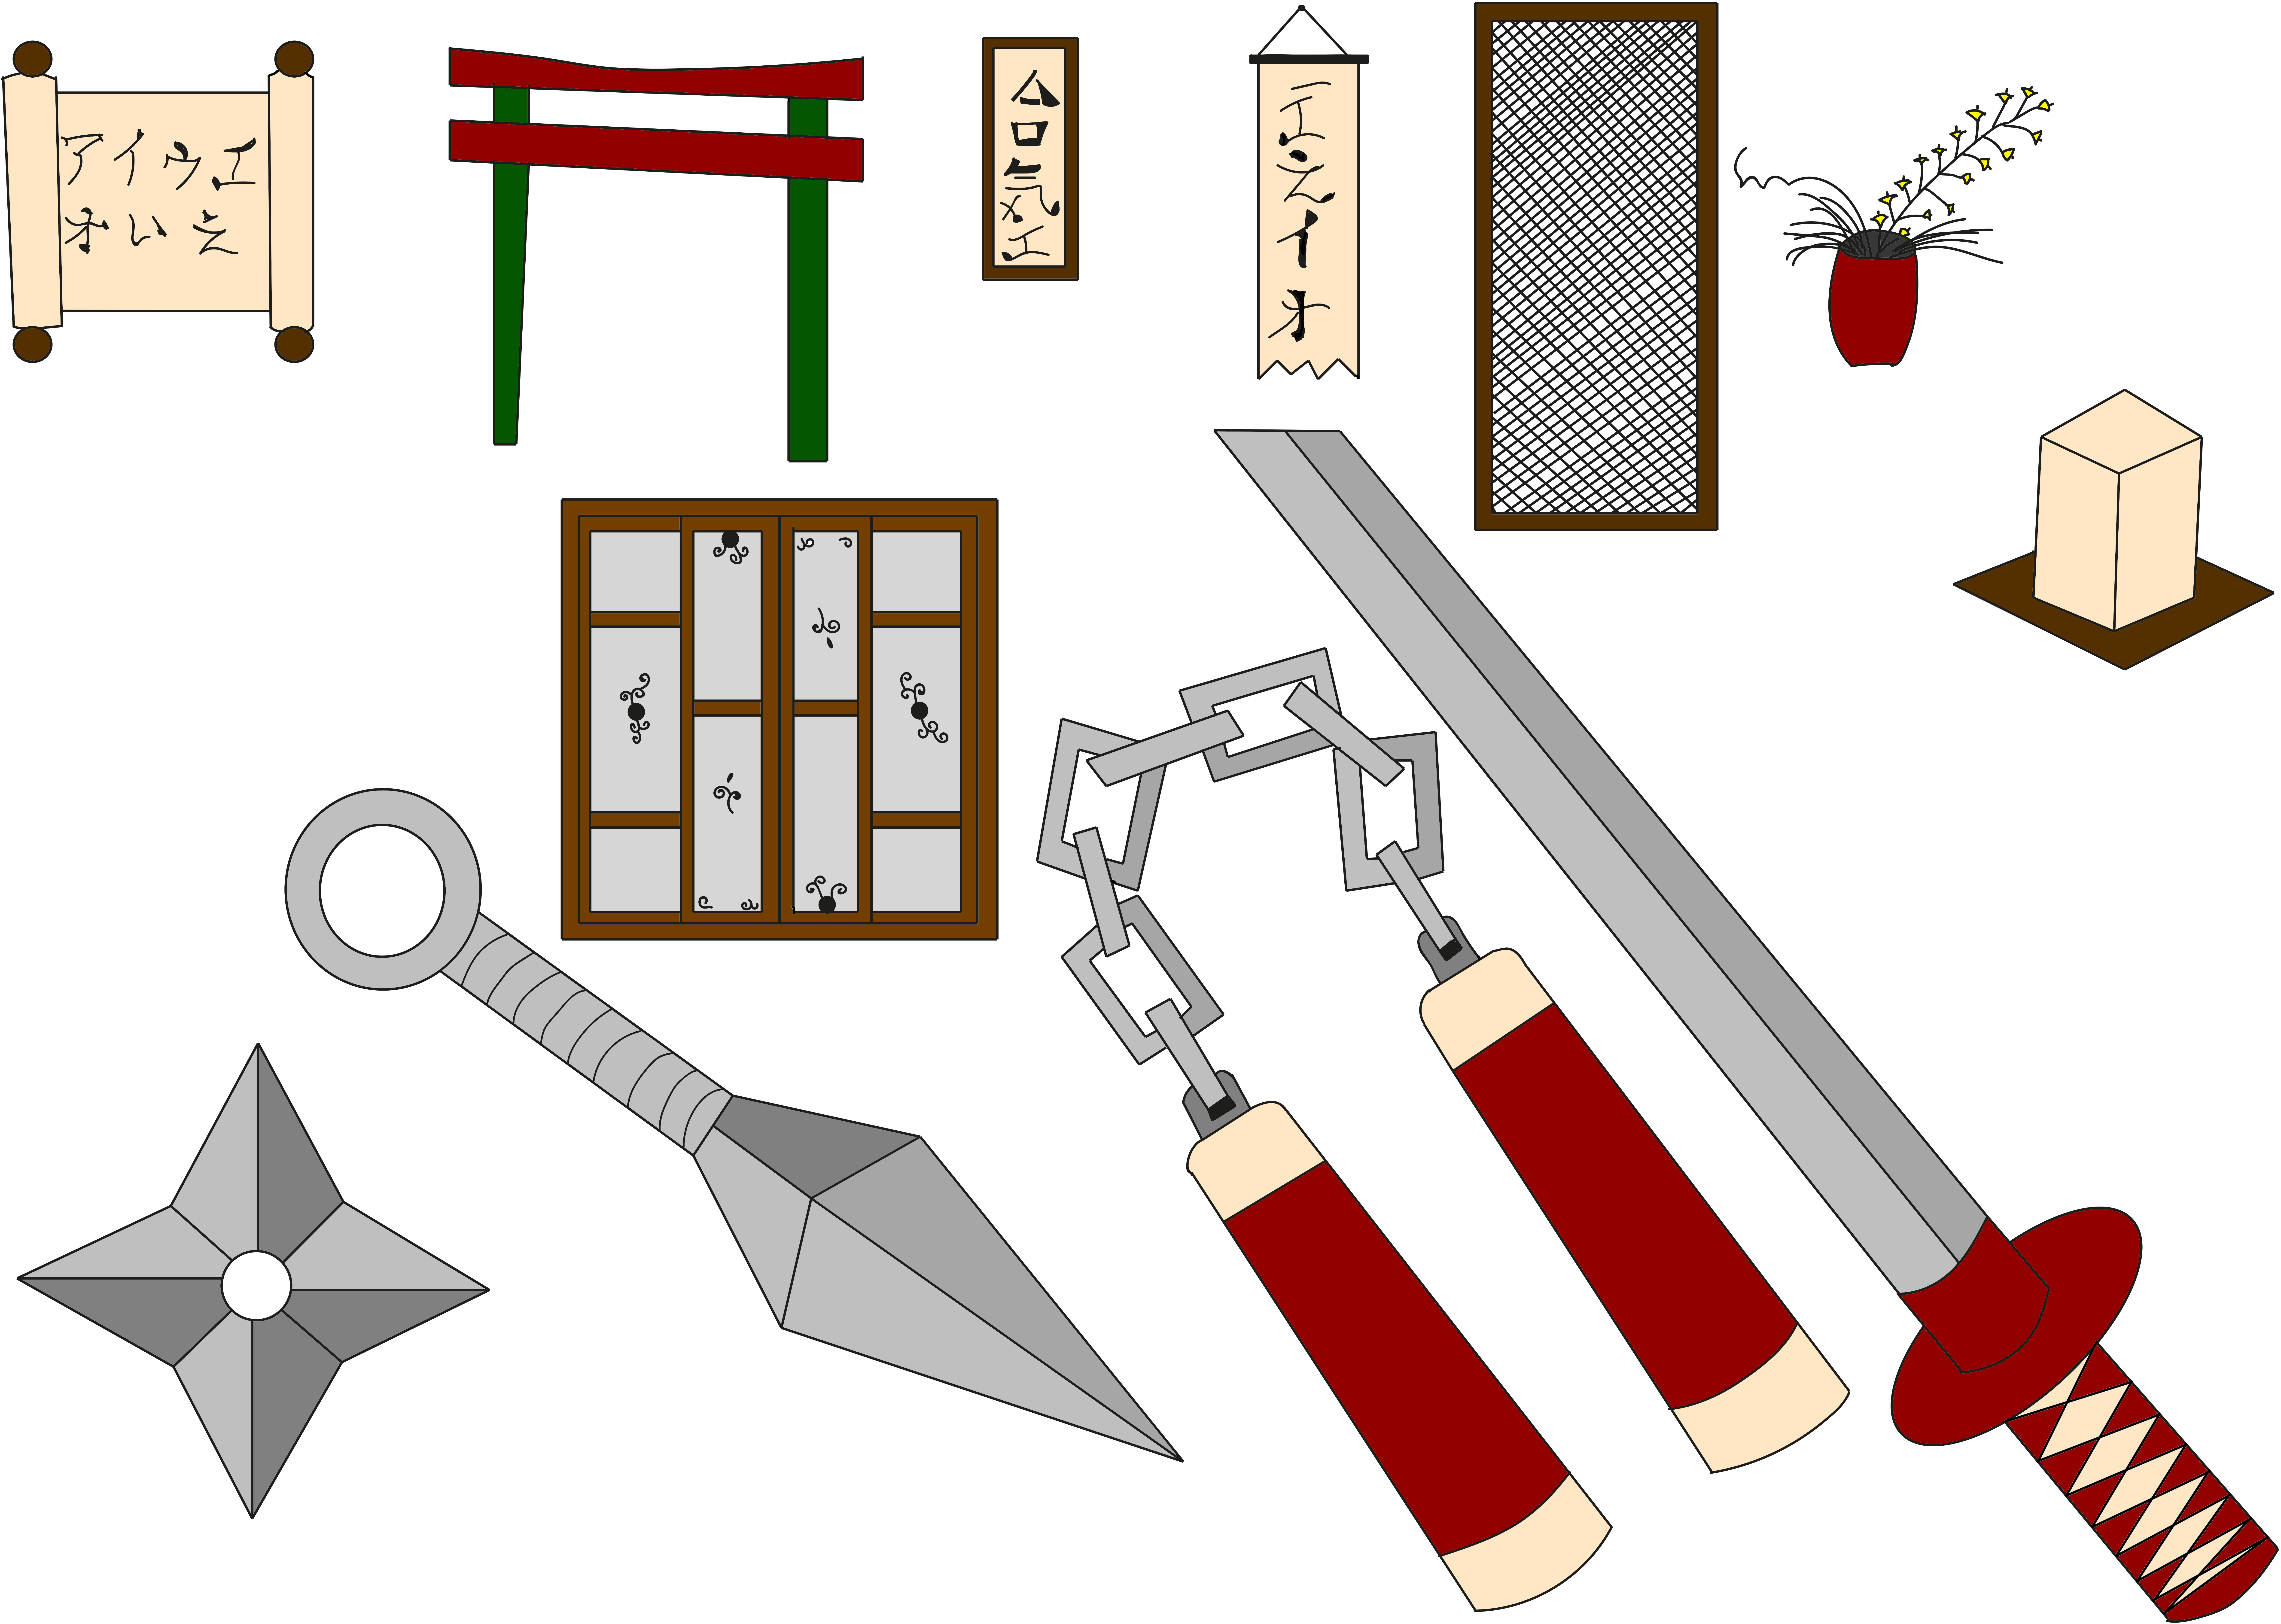 Weapon drawing concept. Japanese weapons art poll